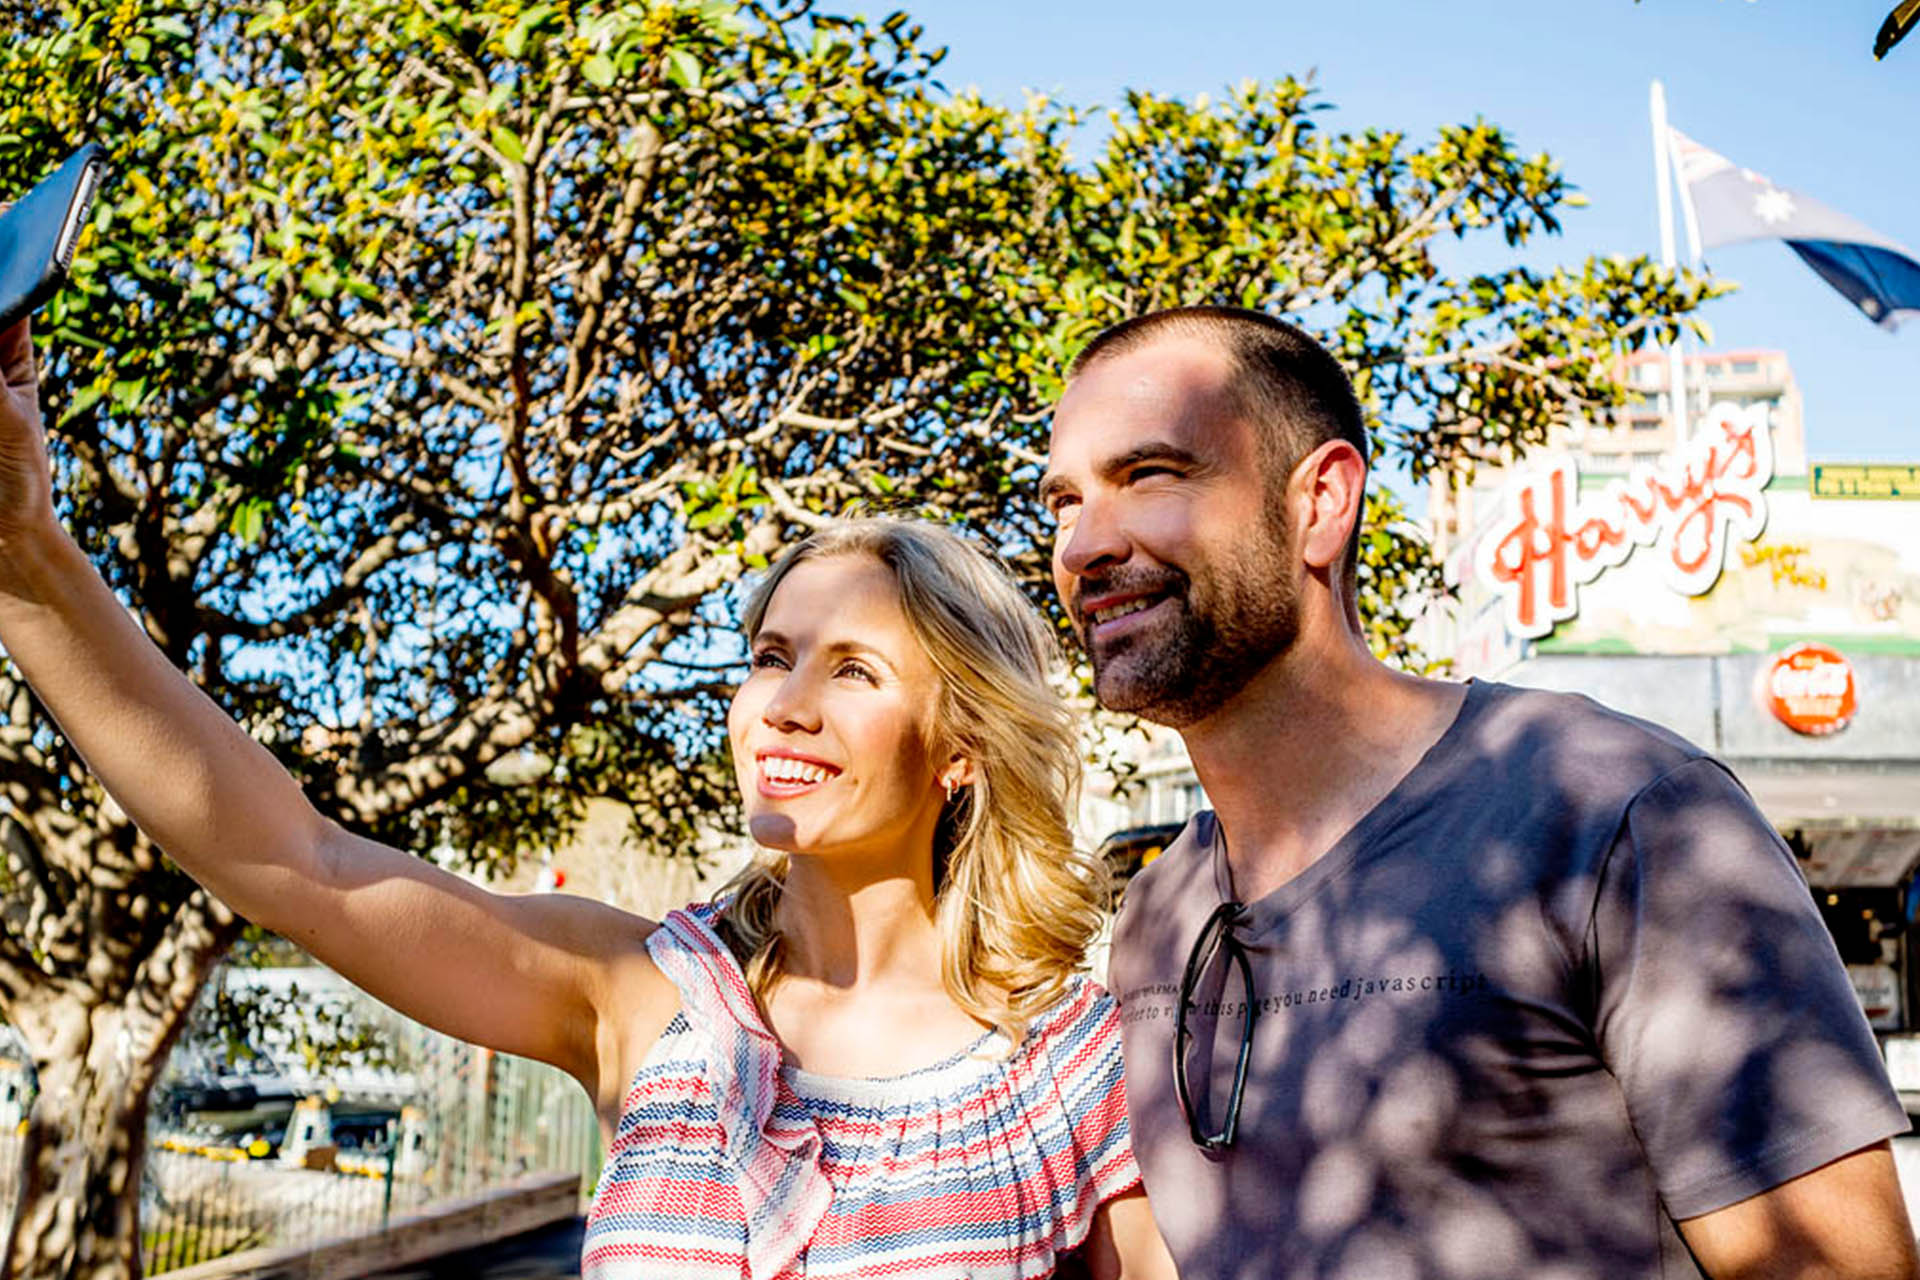 Sydney Hotel Deal – Pre Pay and Save On Your Next Stay